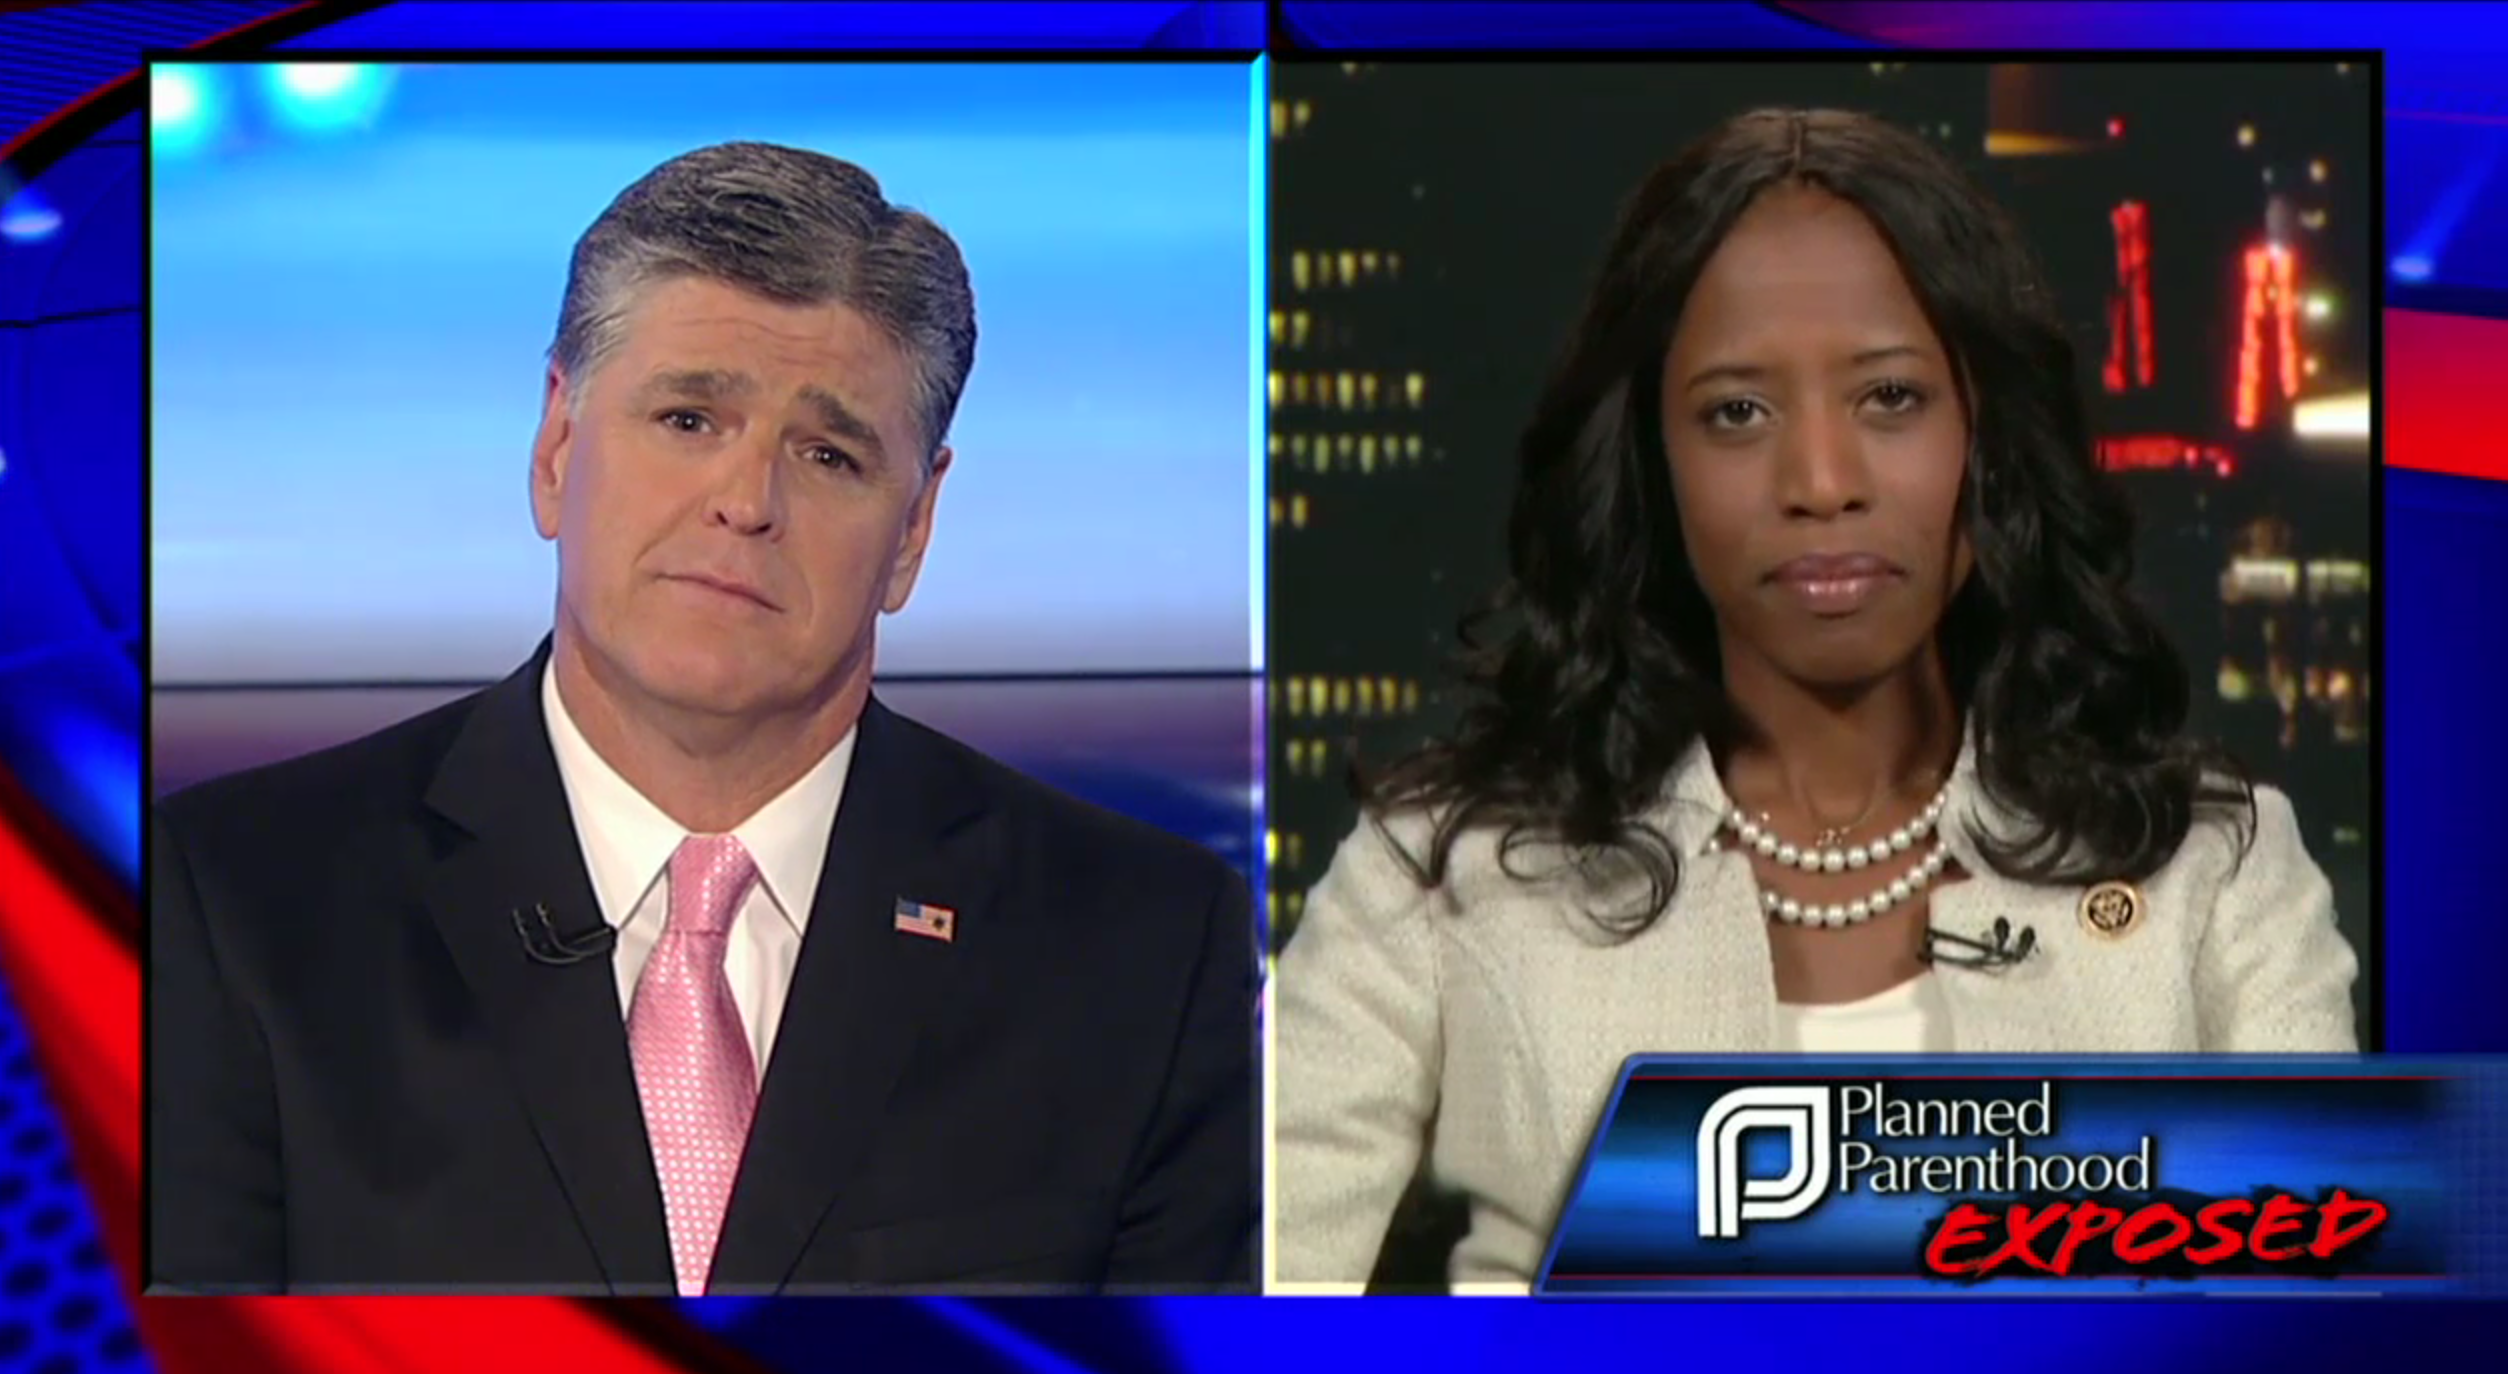 Congresswoman Mia Love Calls Planned Parenthood Out for Killing Black Babies